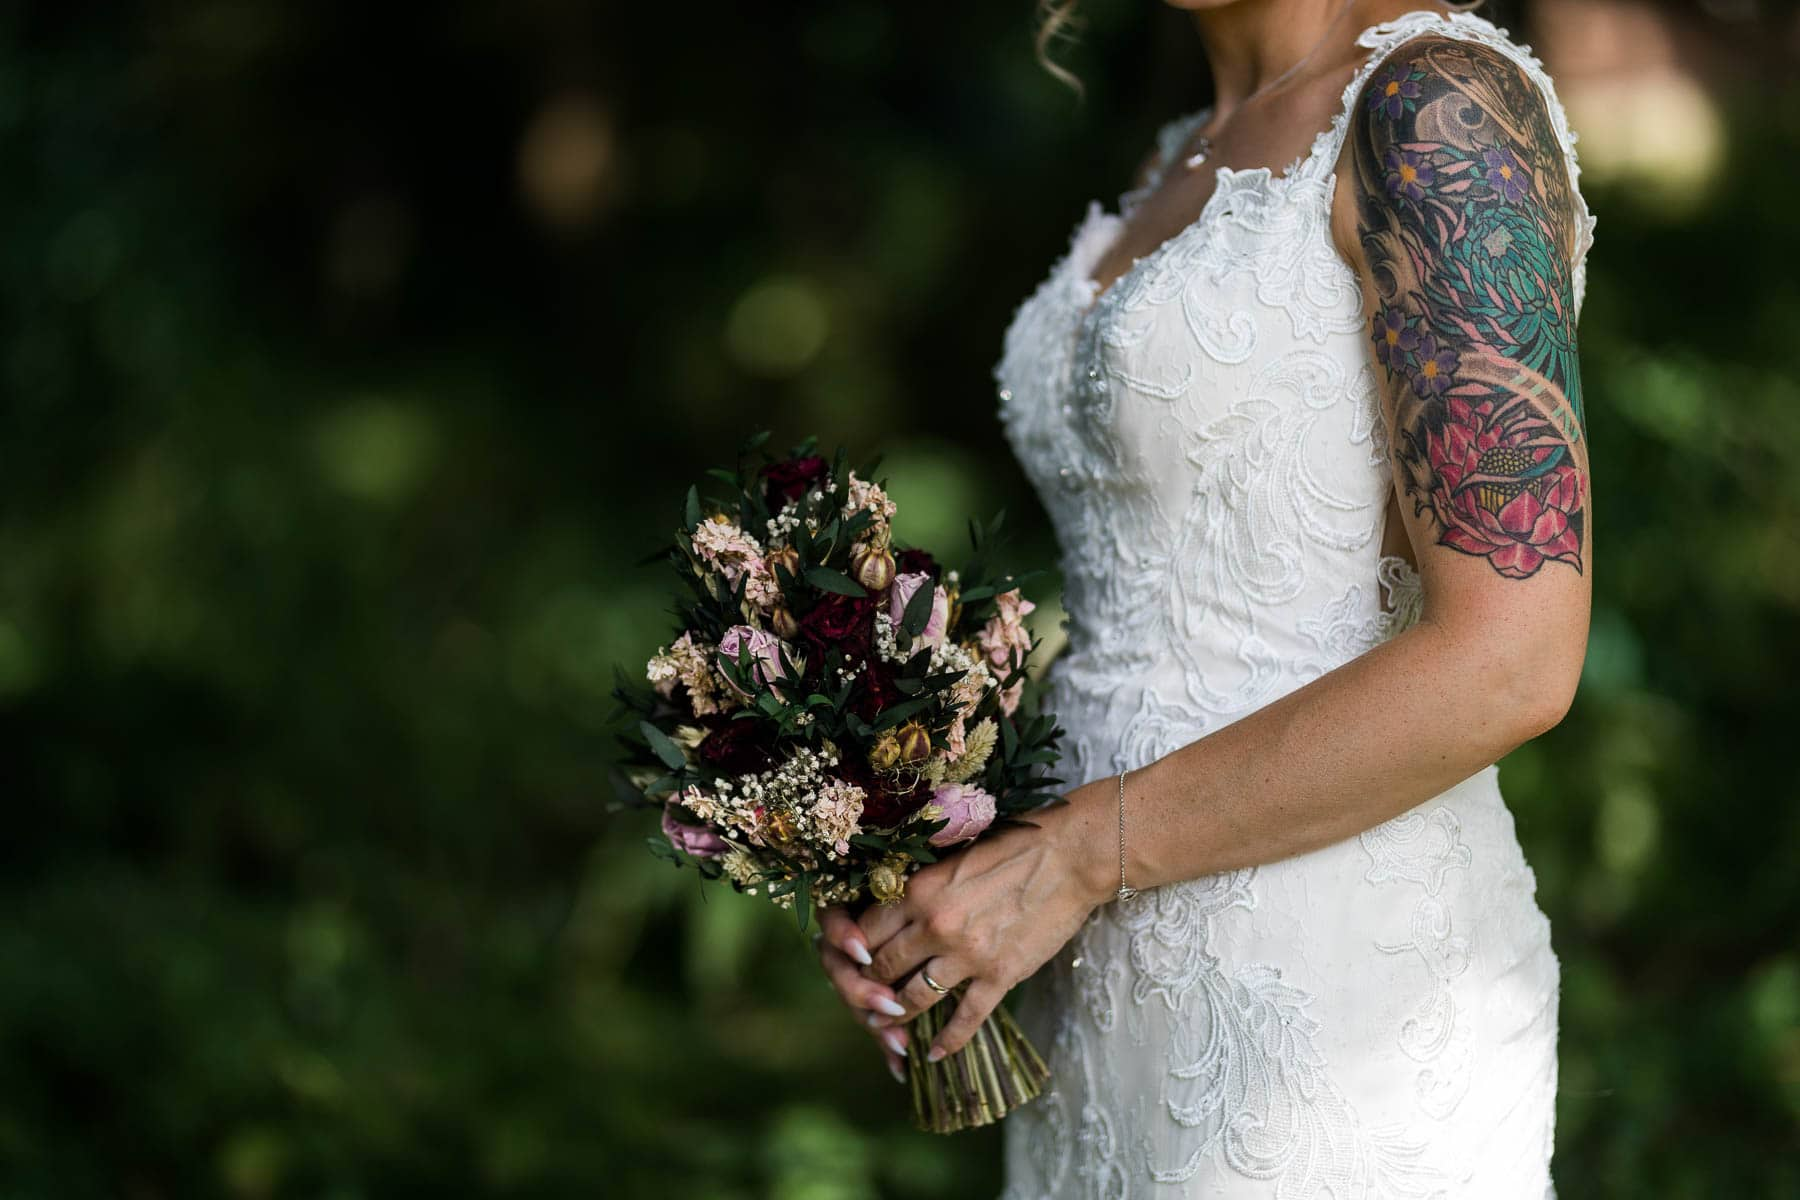 tattooed bride and her ethereal flowers